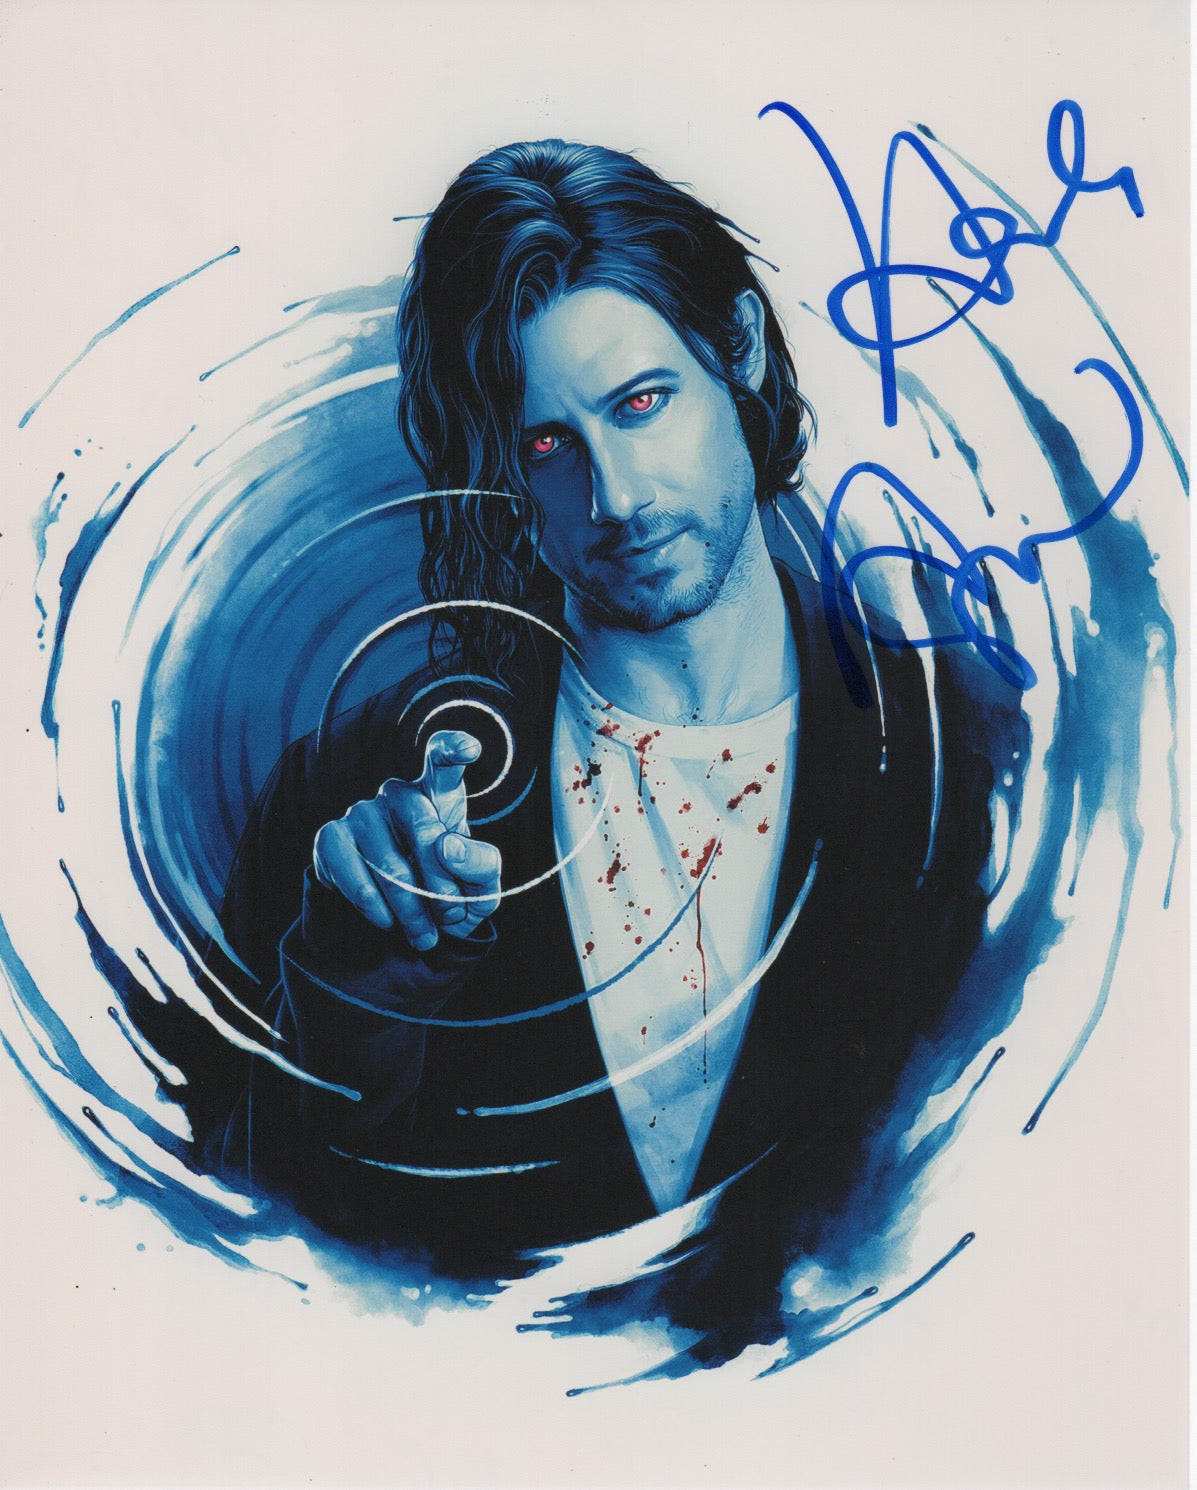 Hale Appleman Magicians Signed Autograph 8x10 Photo #8 - Outlaw Hobbies Authentic Autographs